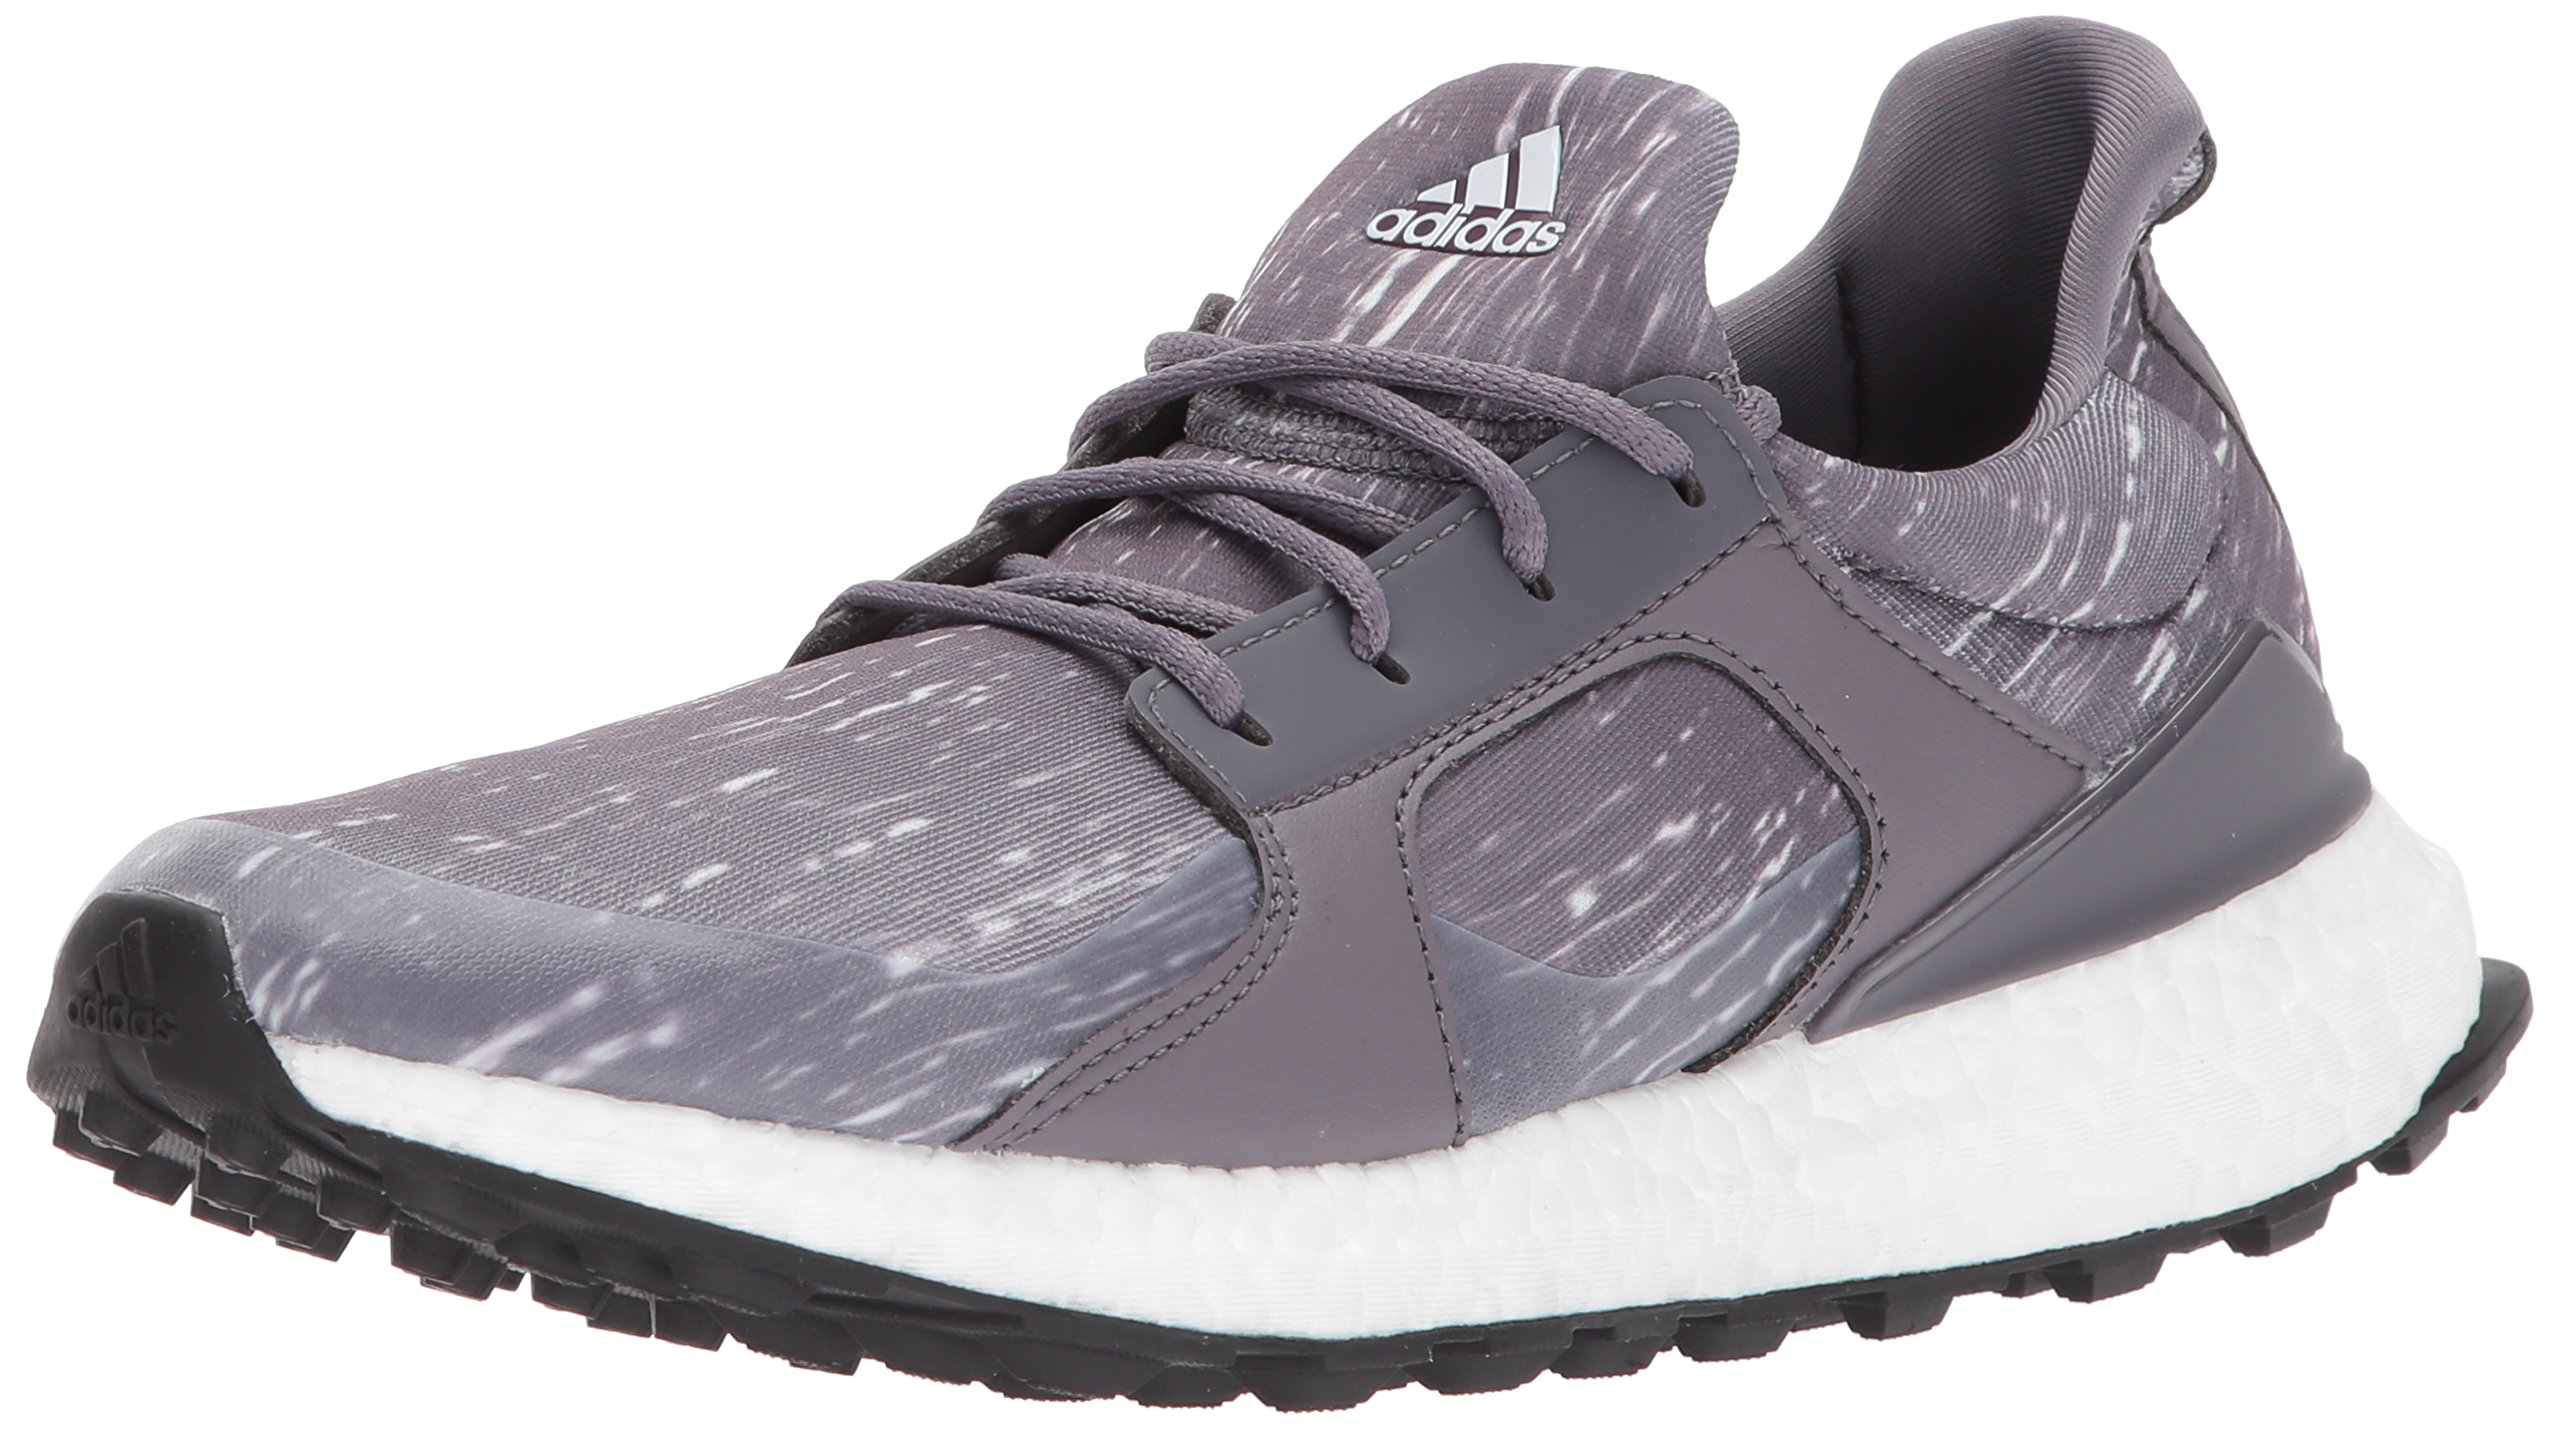 adidas Women's W Climacross Boost Golf-Shoes, Trace Grey/Grey Two Core Black, 9 M US by adidas (Image #1)